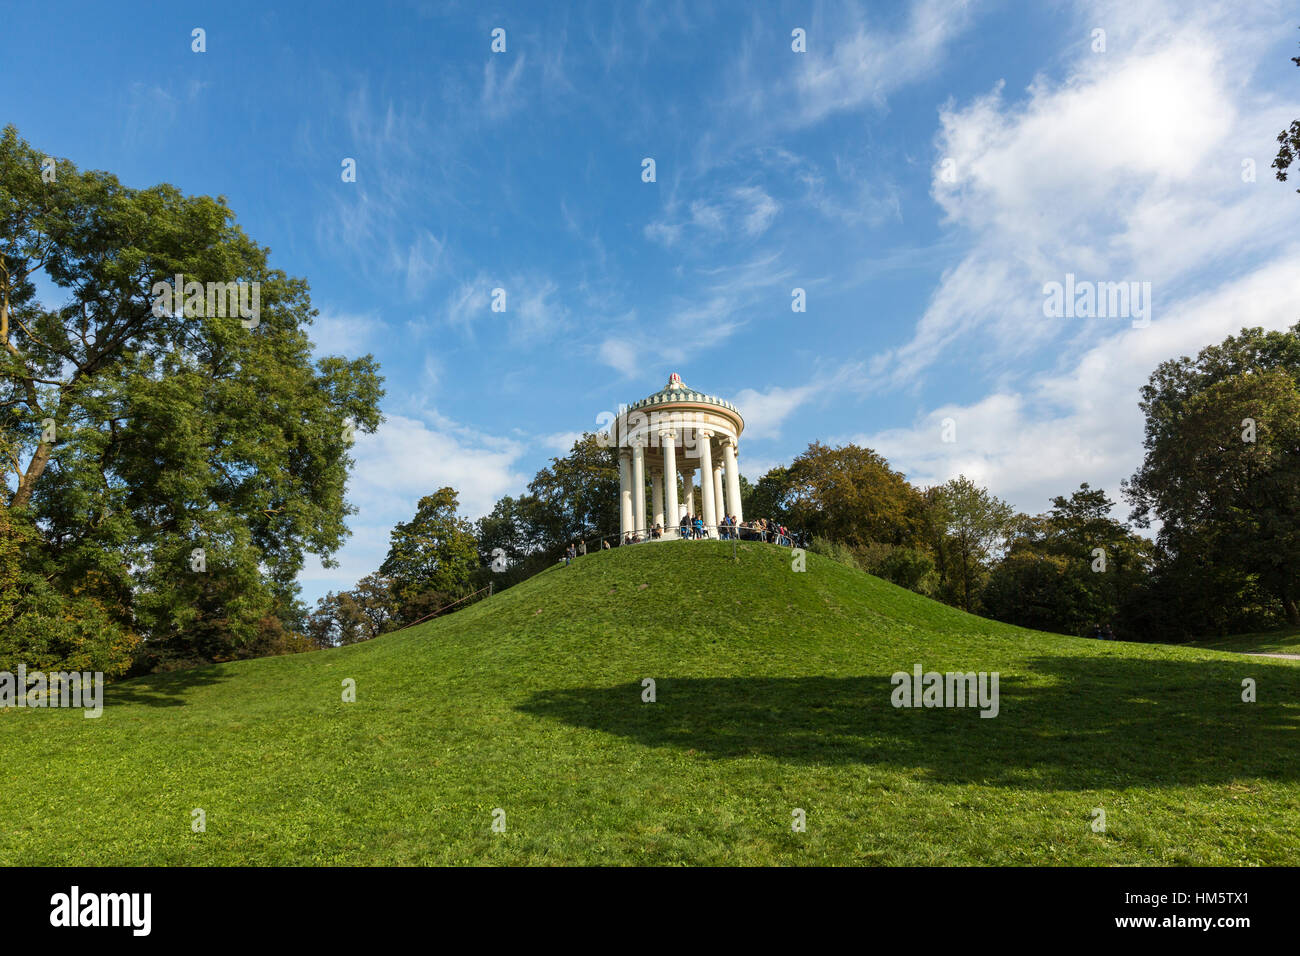 The Monopteros with tourists in Englischer Garten, English Garden, Munich, Germany - Stock Image